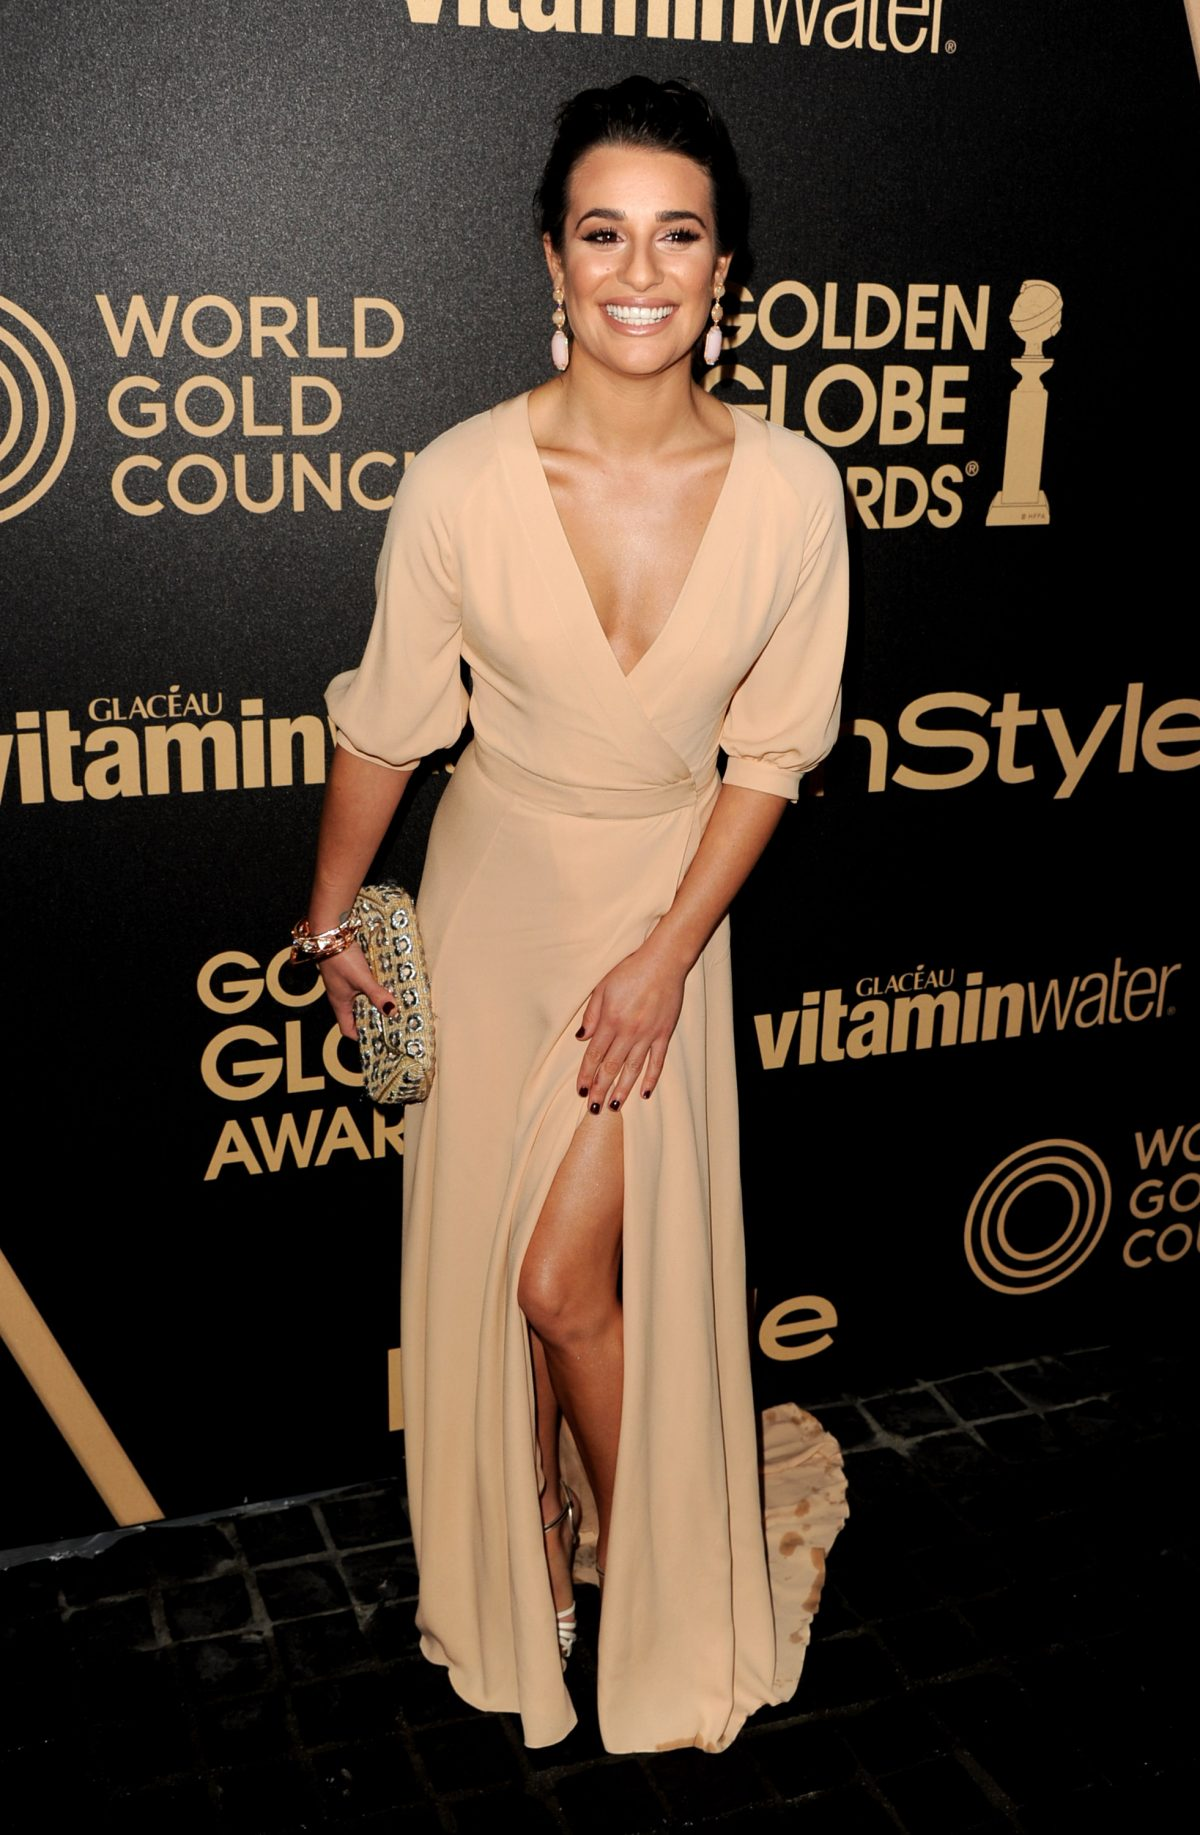 Lea Michele arrives at the Hollywood Foreign Press Association's and In Style's celebration of the 2013 Golden Globes Awards Season at Cecconi's on November 29, 2012 in West Hollywood, California. (Photo by Kevin Winter/Getty Images)